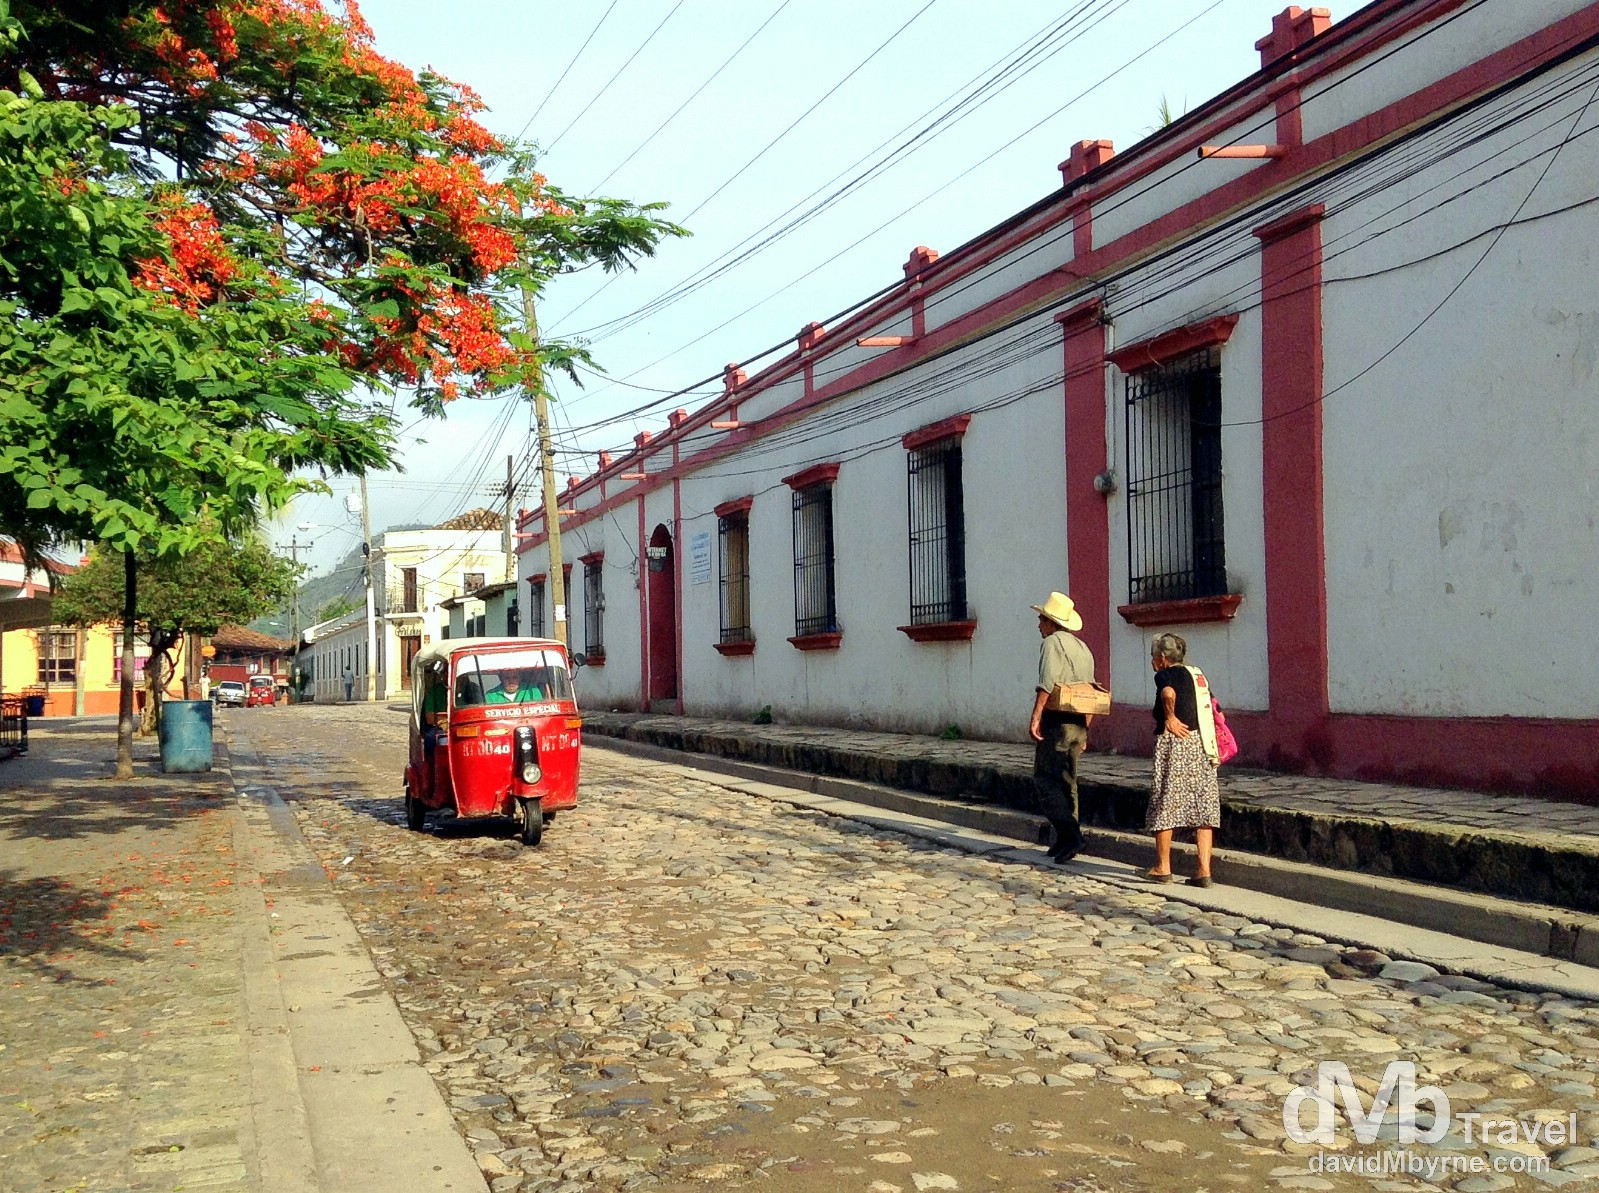 A tuk-tuk & early morning strollers (& shadows) on the cobbled streets of Copan Ruinas, western Honduras. June 8th 2013. (iPod)